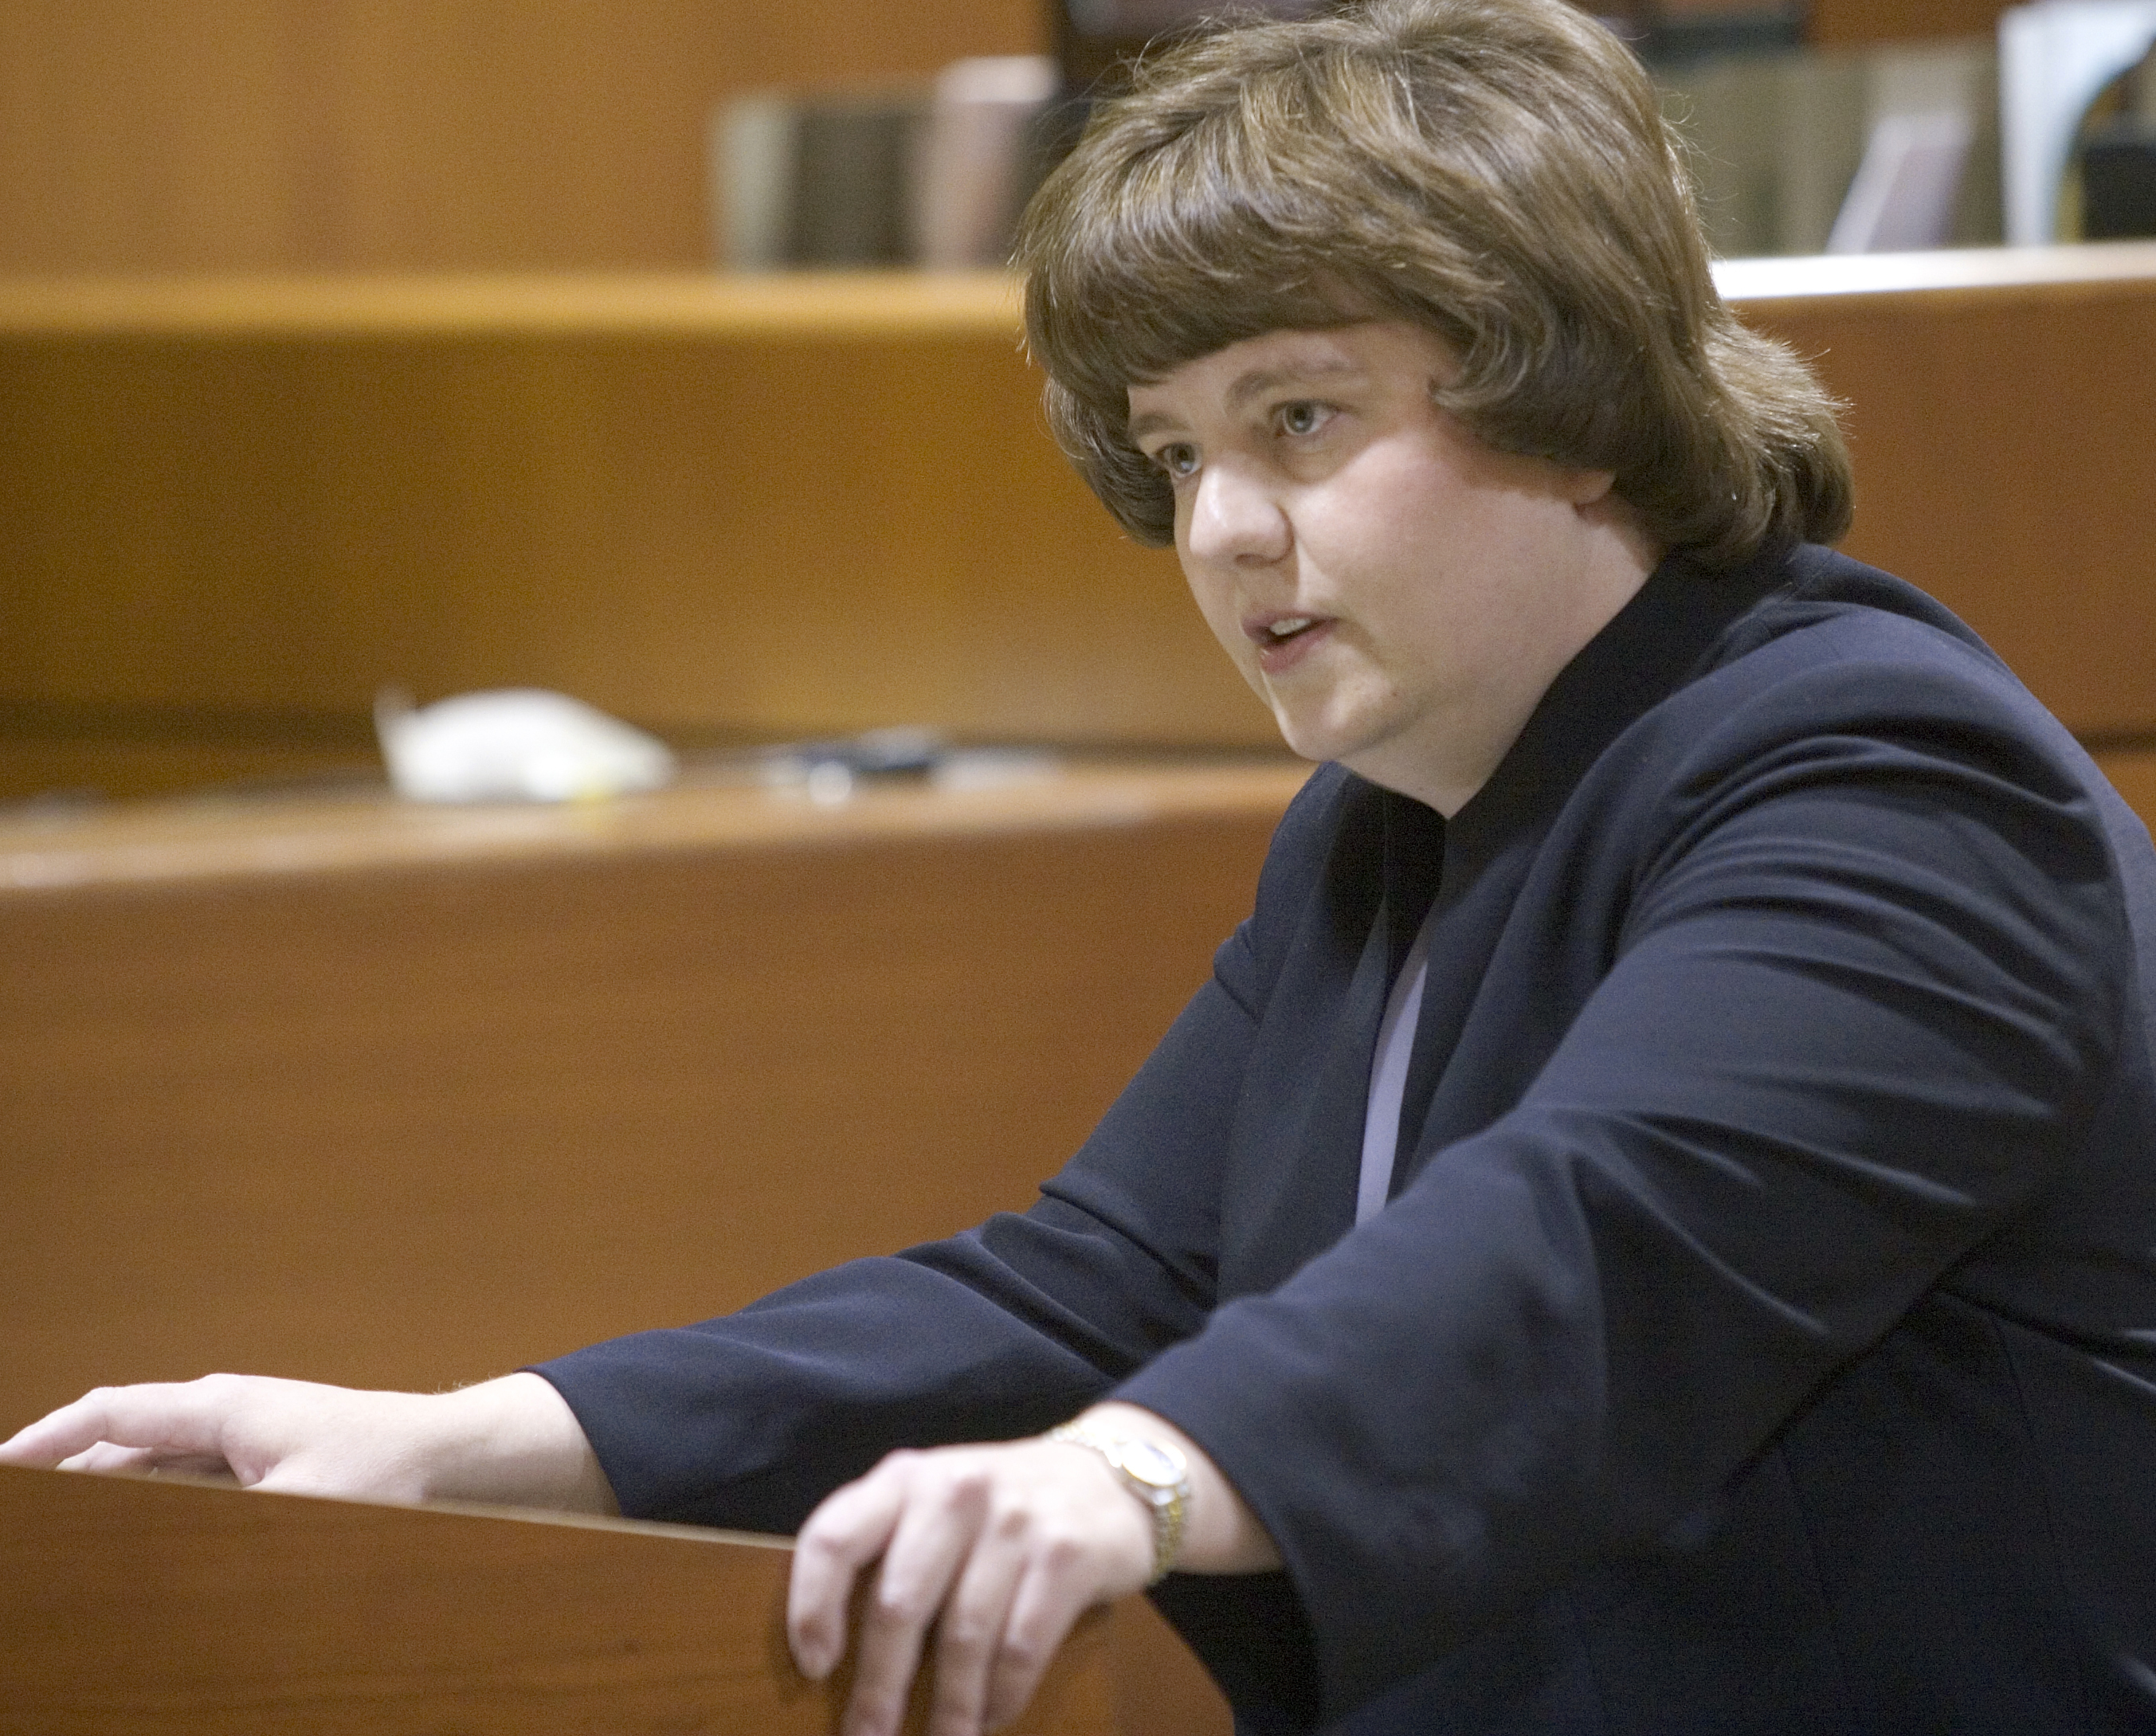 In this Oct. 27, 2004 photo, Rachel Mitchell makes an opening statement in the trial of Karl LeClaire at court in Mesa, Ariz. Senate Republicans are bringing Mitchell to handle questioning about allegations of sexual assault against Supreme Court nominee Brett Kavanaugh on Thursday, Sept. 27, 2018.